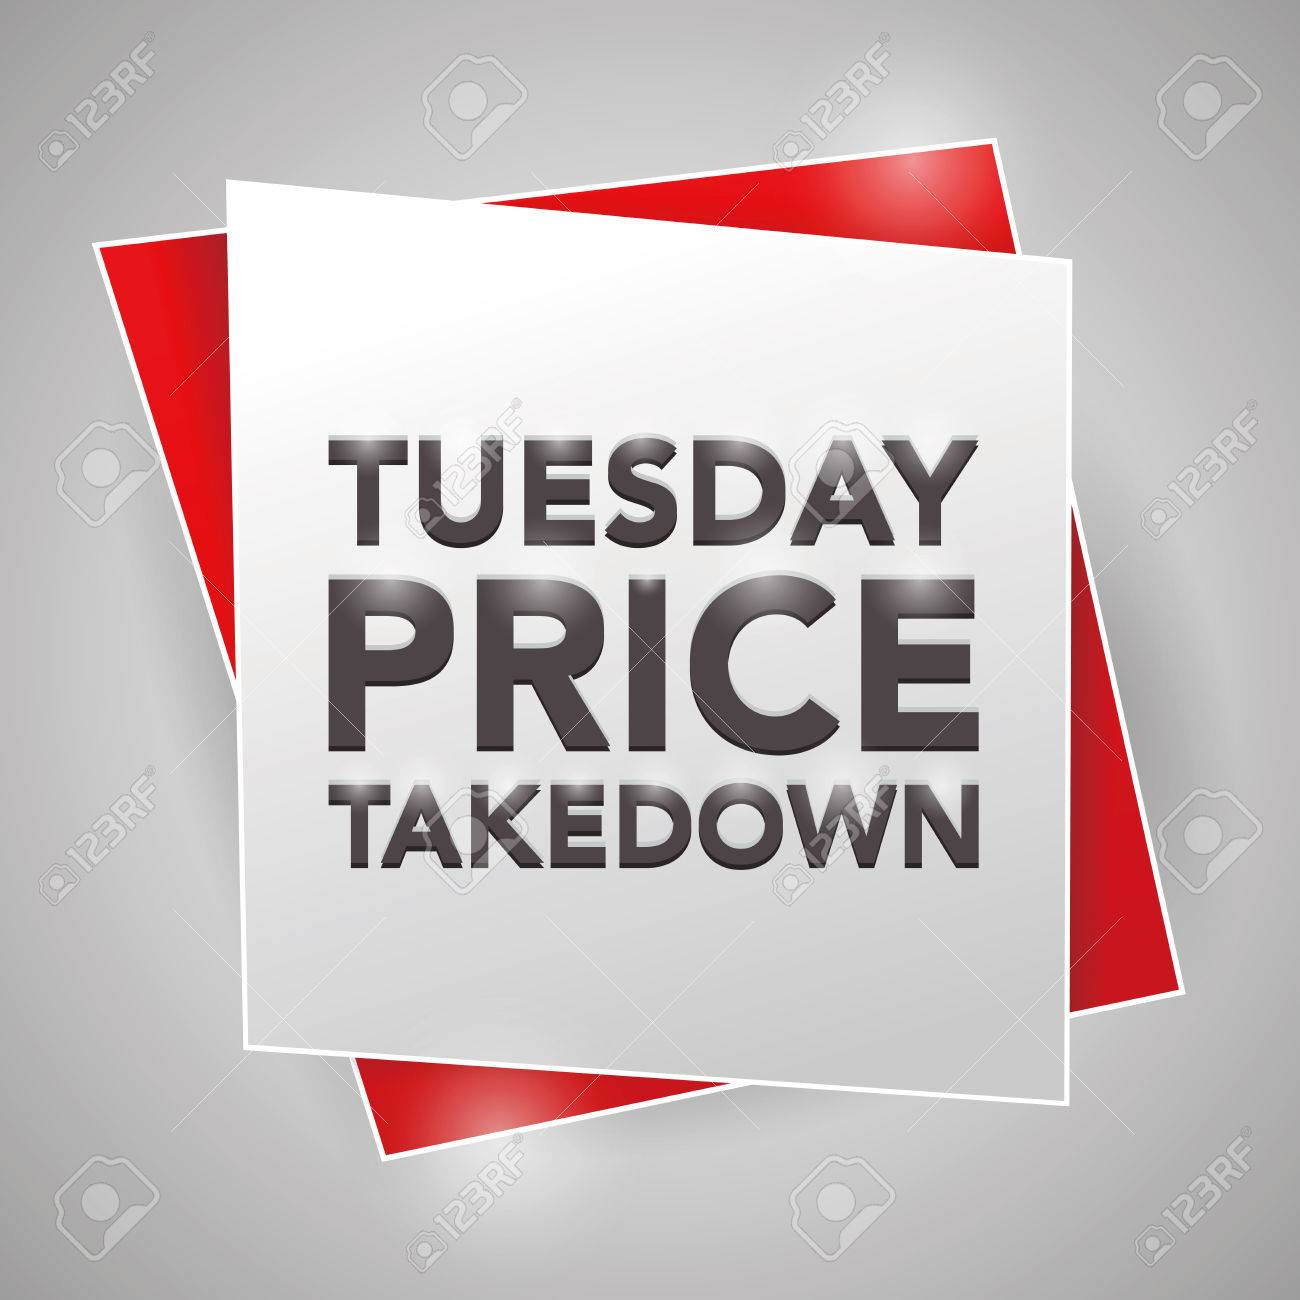 Price for a poster design - Tuesday Price Takedown Poster Design Element Stock Vector 44060709